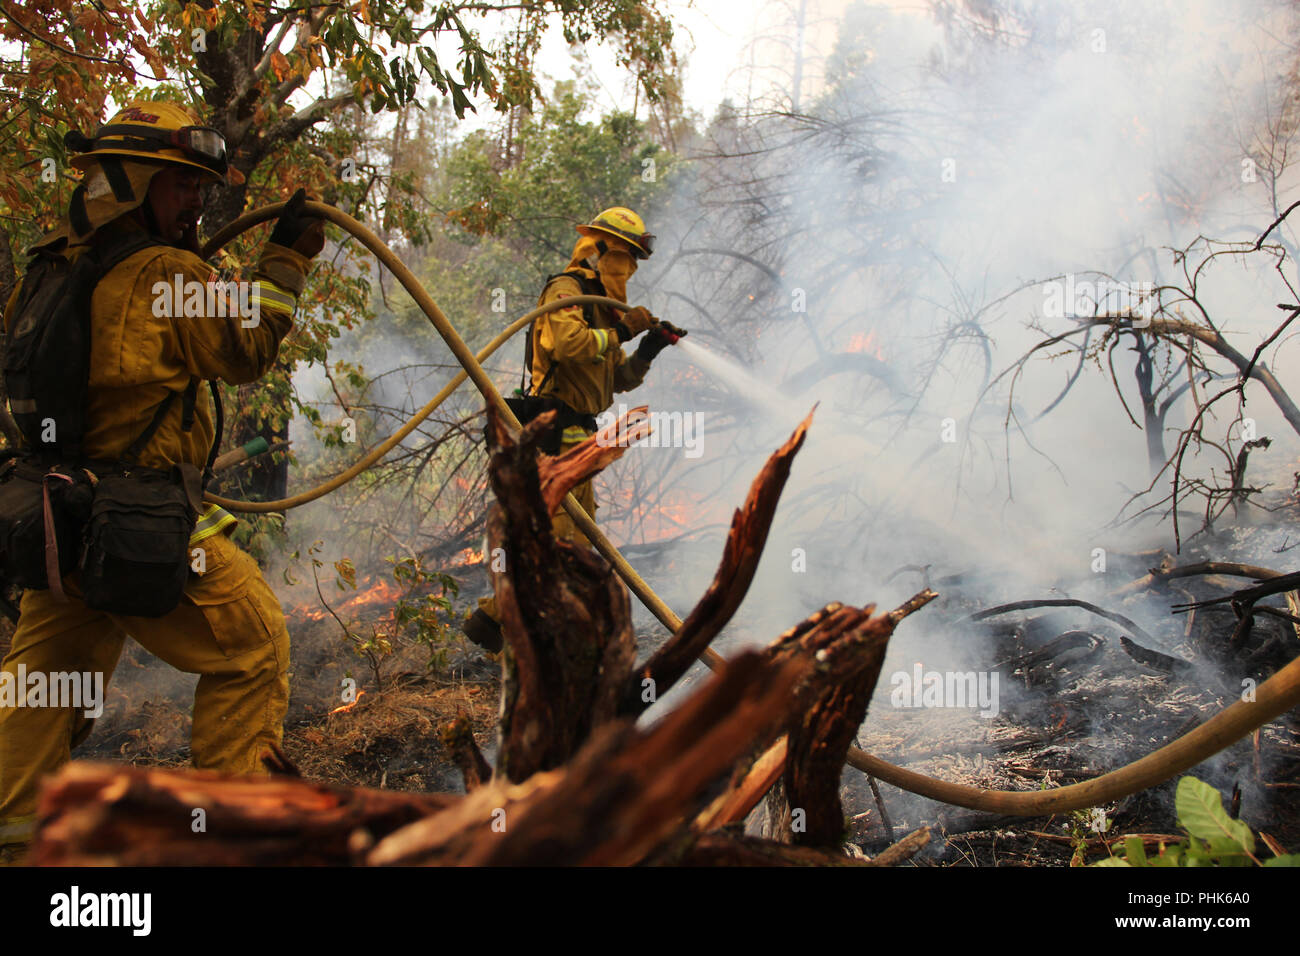 Firefighters from the Cal Fire San Diego Strike Team during operations to control the Ferguson Fire near Yosemite National Park July 25, 2018 in Lush Meadows, California. - Stock Image